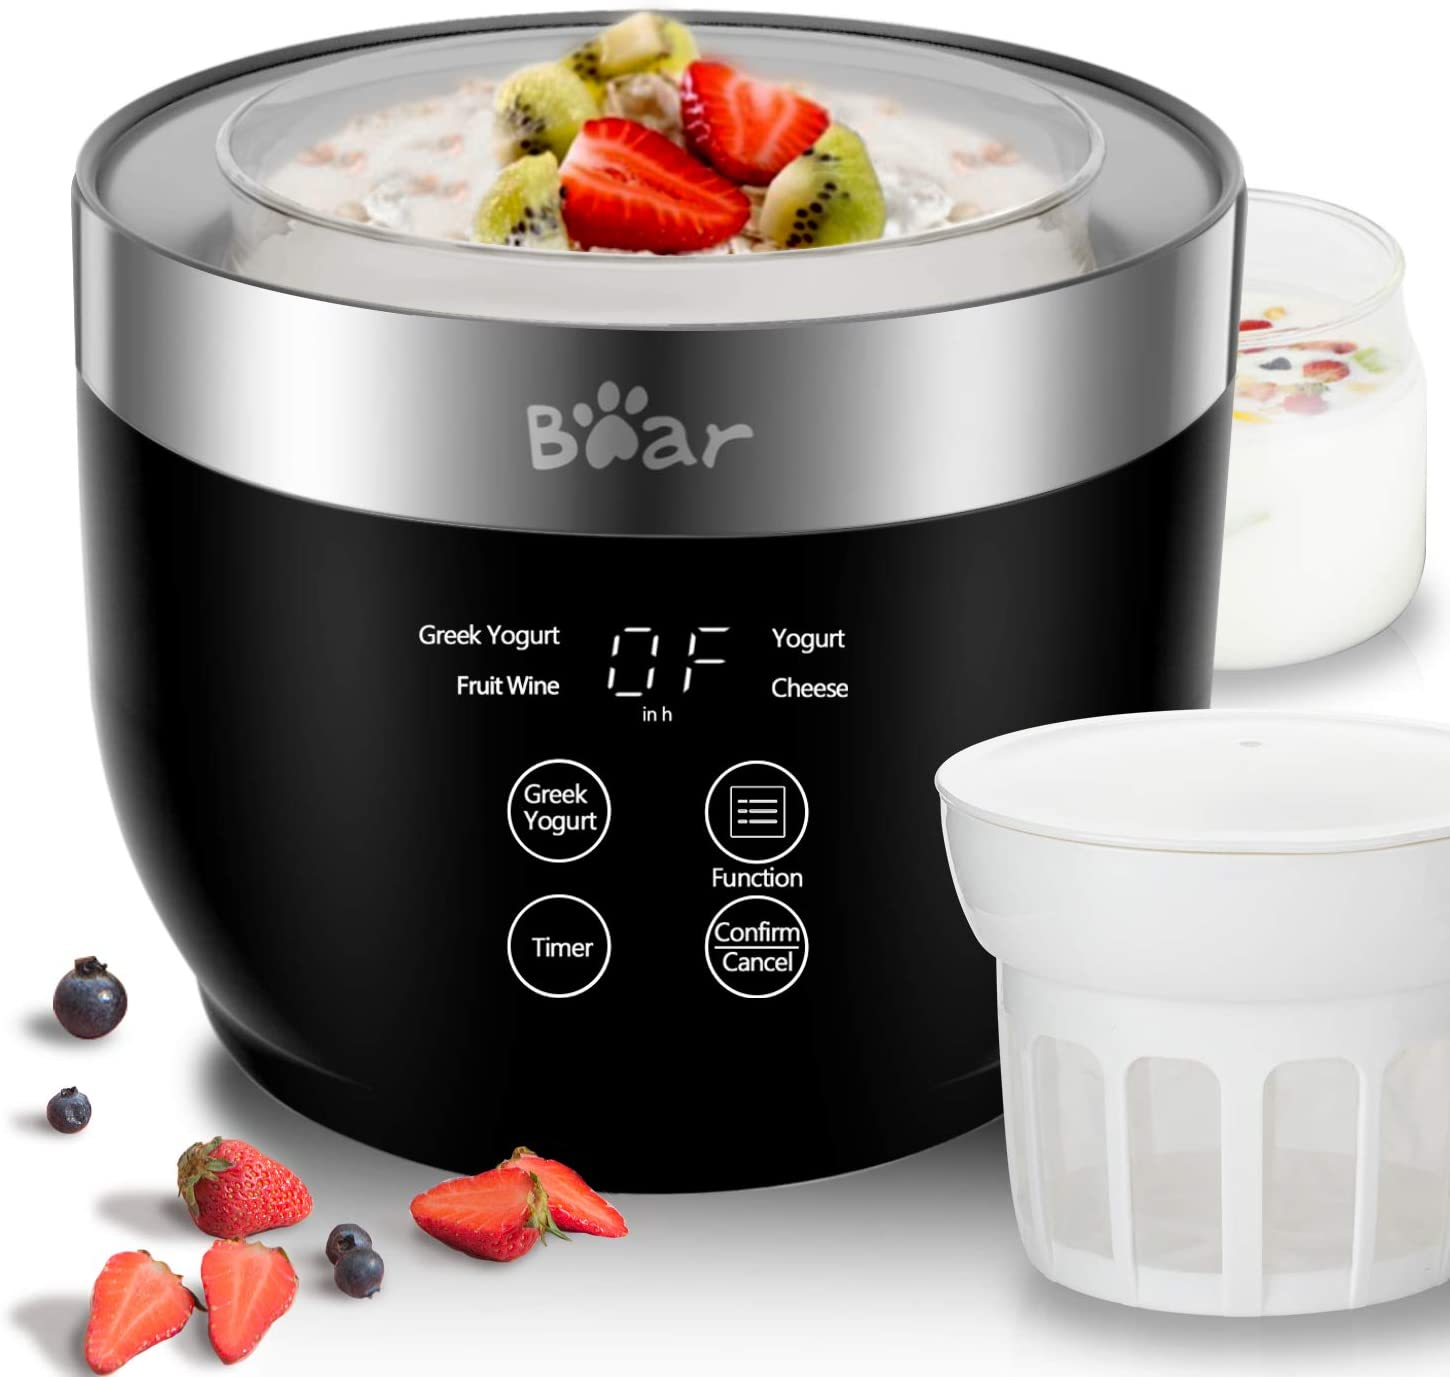 Yogurt Maker, Yogurt Maker Machine with Stainless Steel Inner Pot, Greek Yogurt Maker with Timer Control, Automatic Digital Frozen Yogurt Maker with 2 Glass Jars 1 Quart and Strainer for Home Organic Yogurt, Black